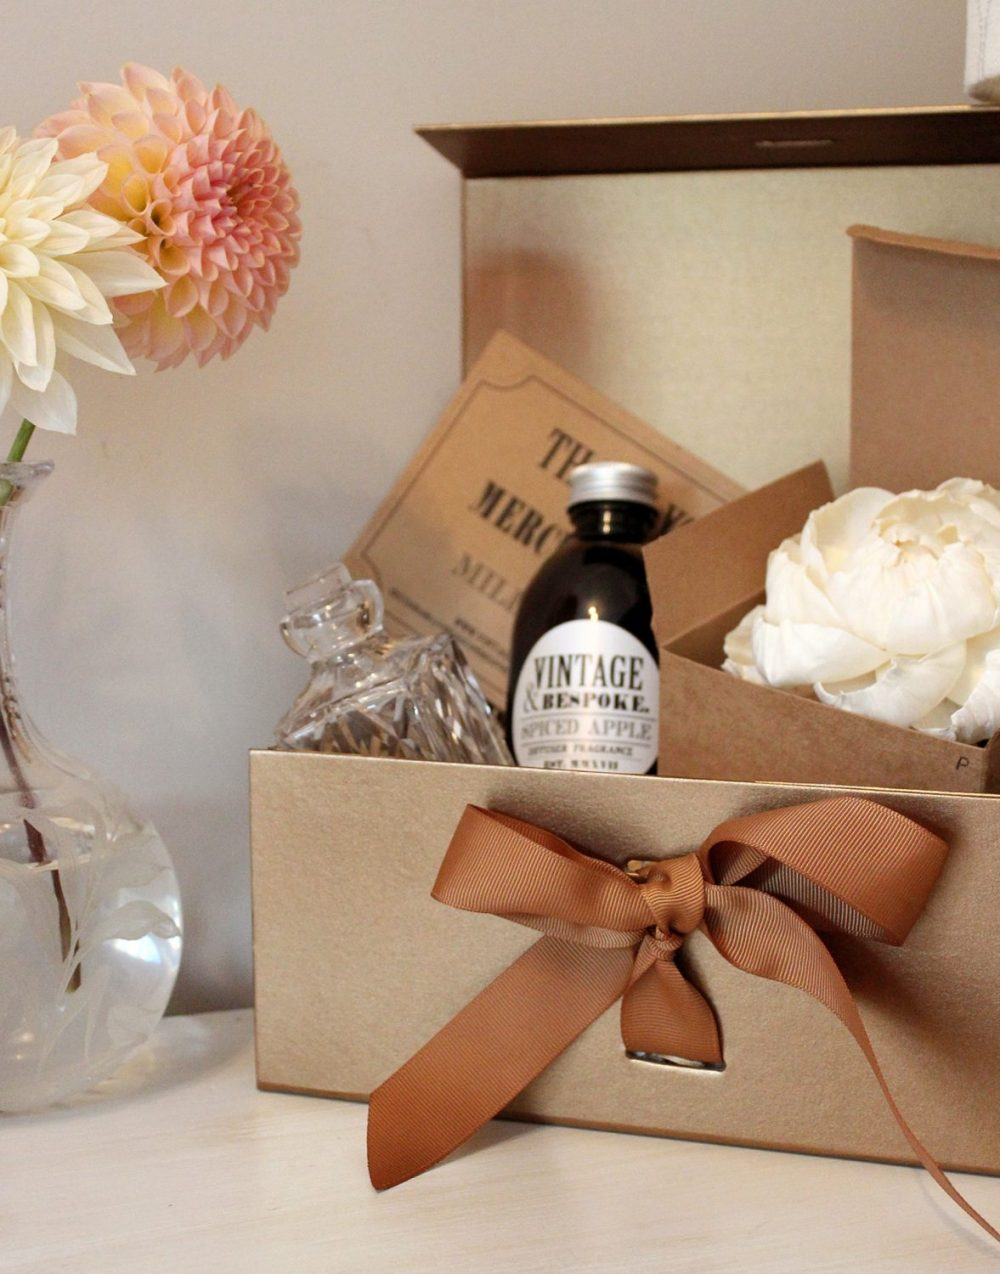 diffuser gift box from Vintage & Bespoke Ltd.